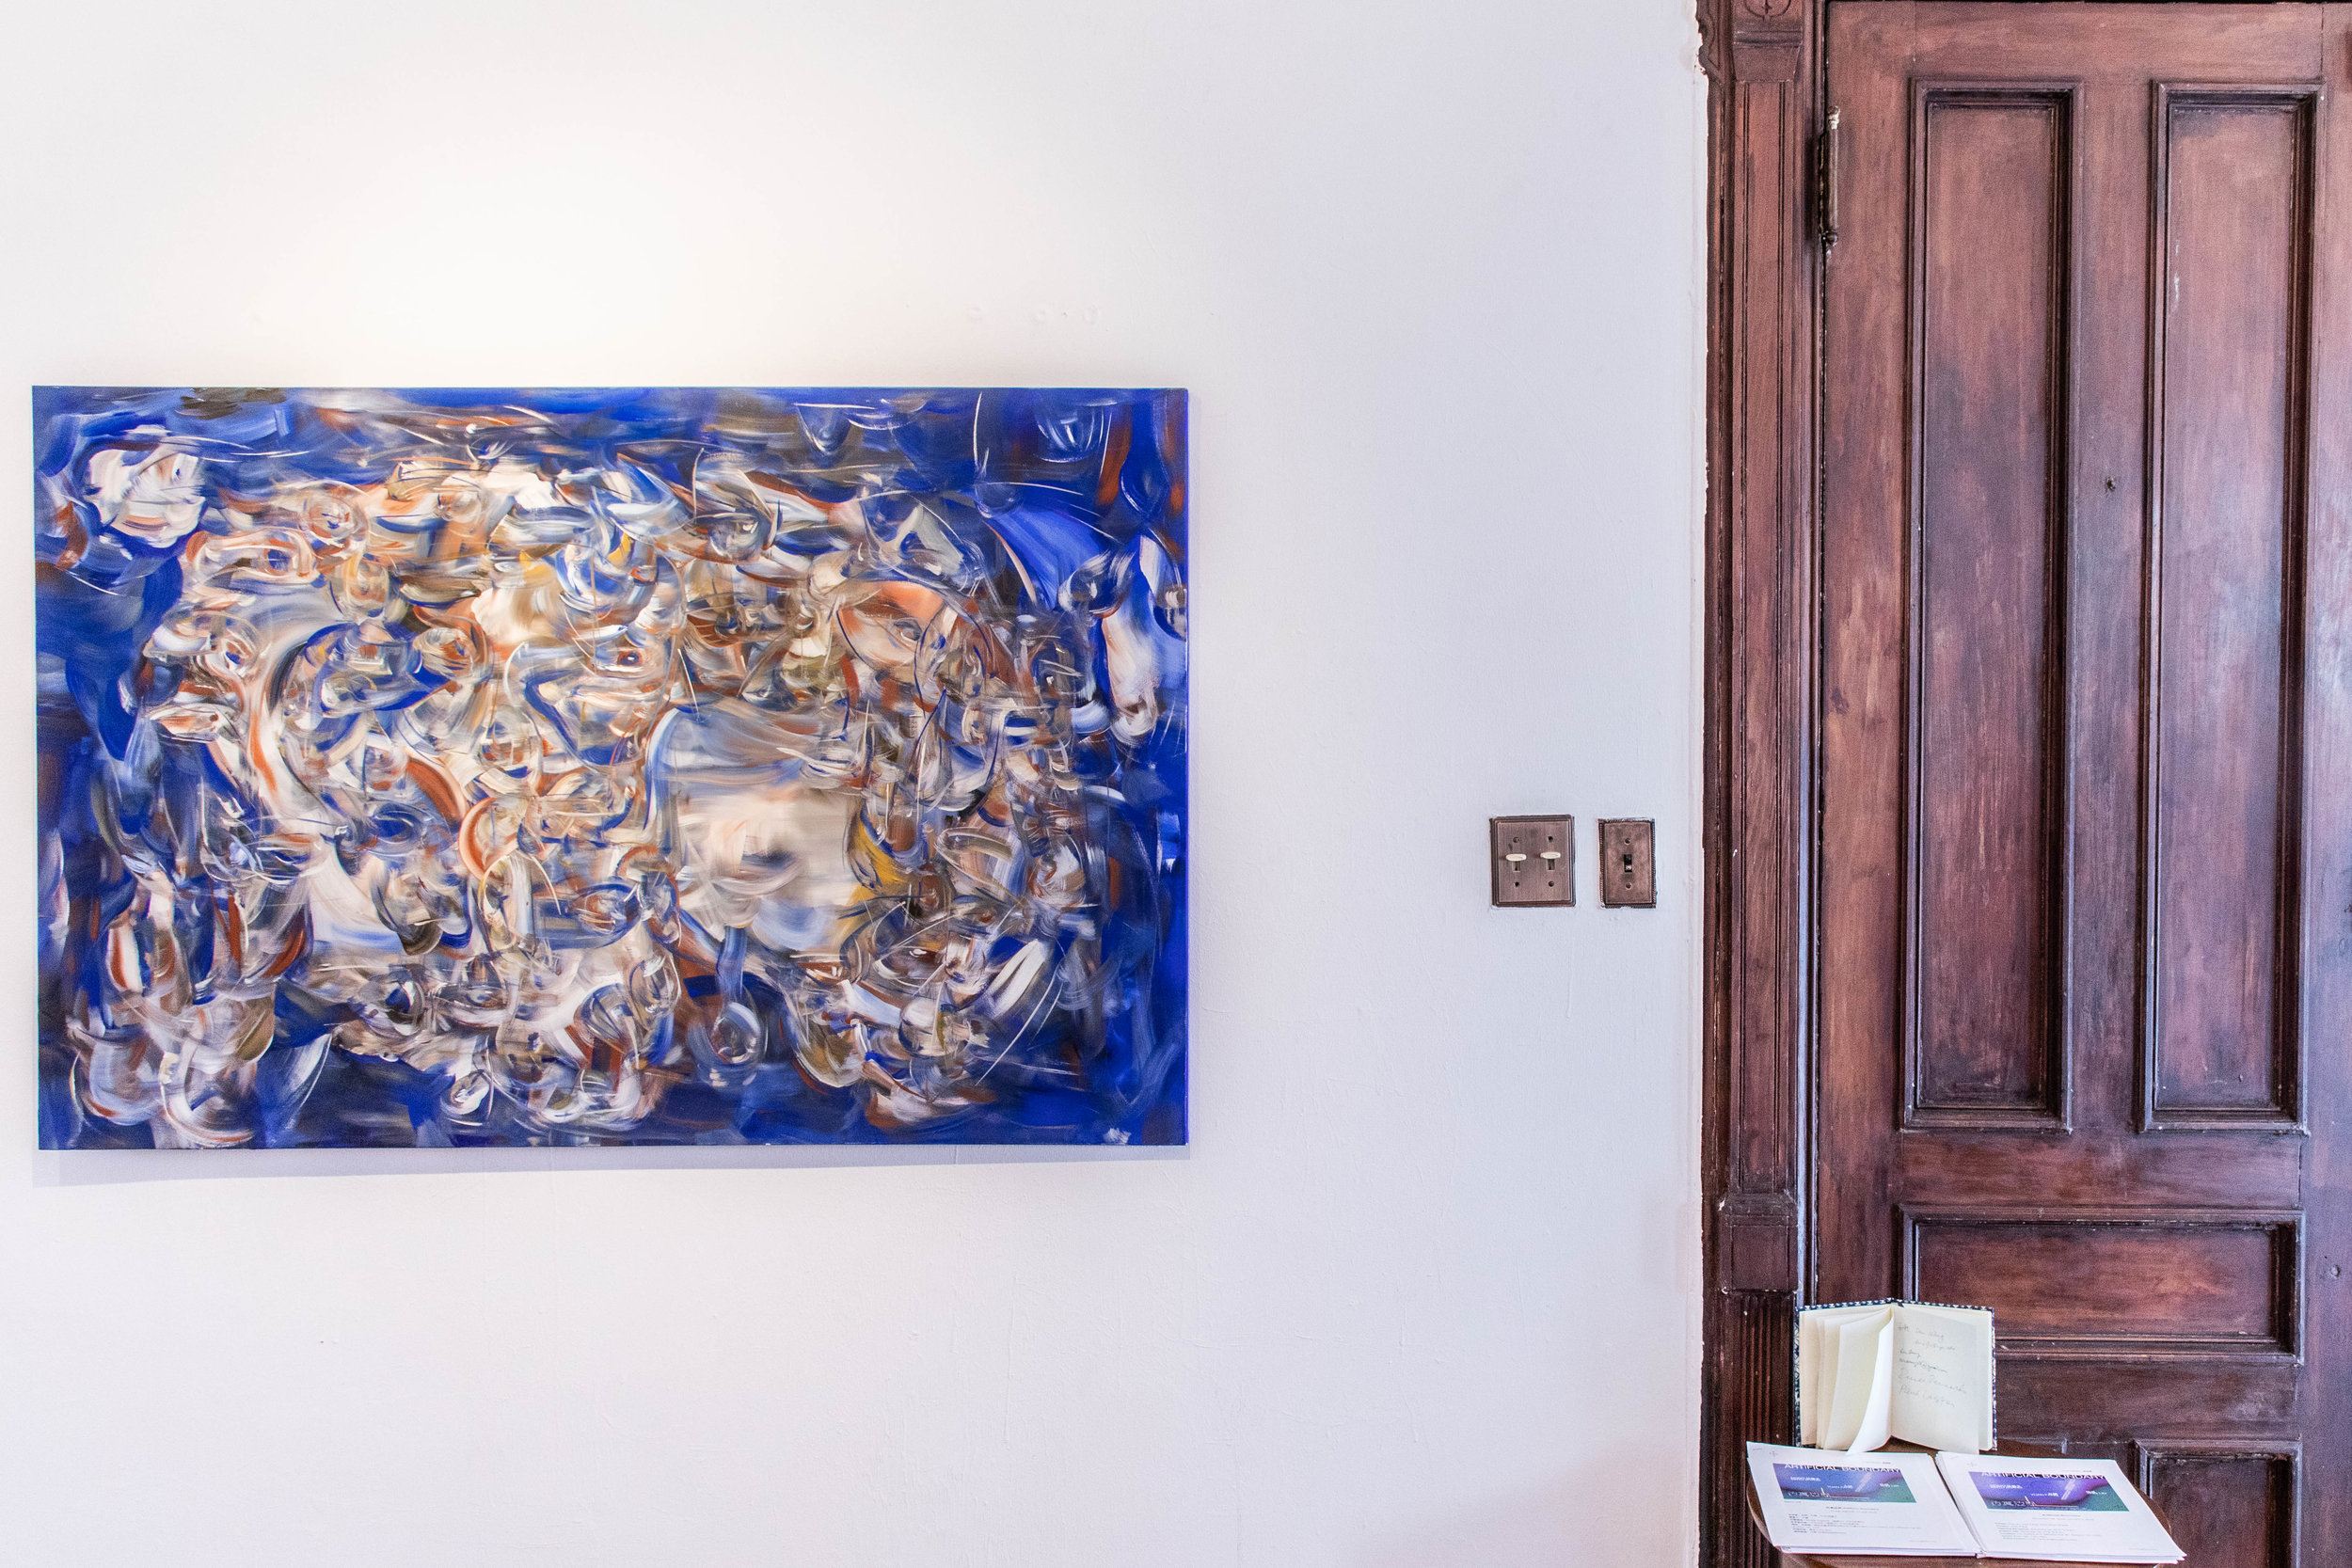 Artificial Boundary , Fou Gallery, Installation View, 2018